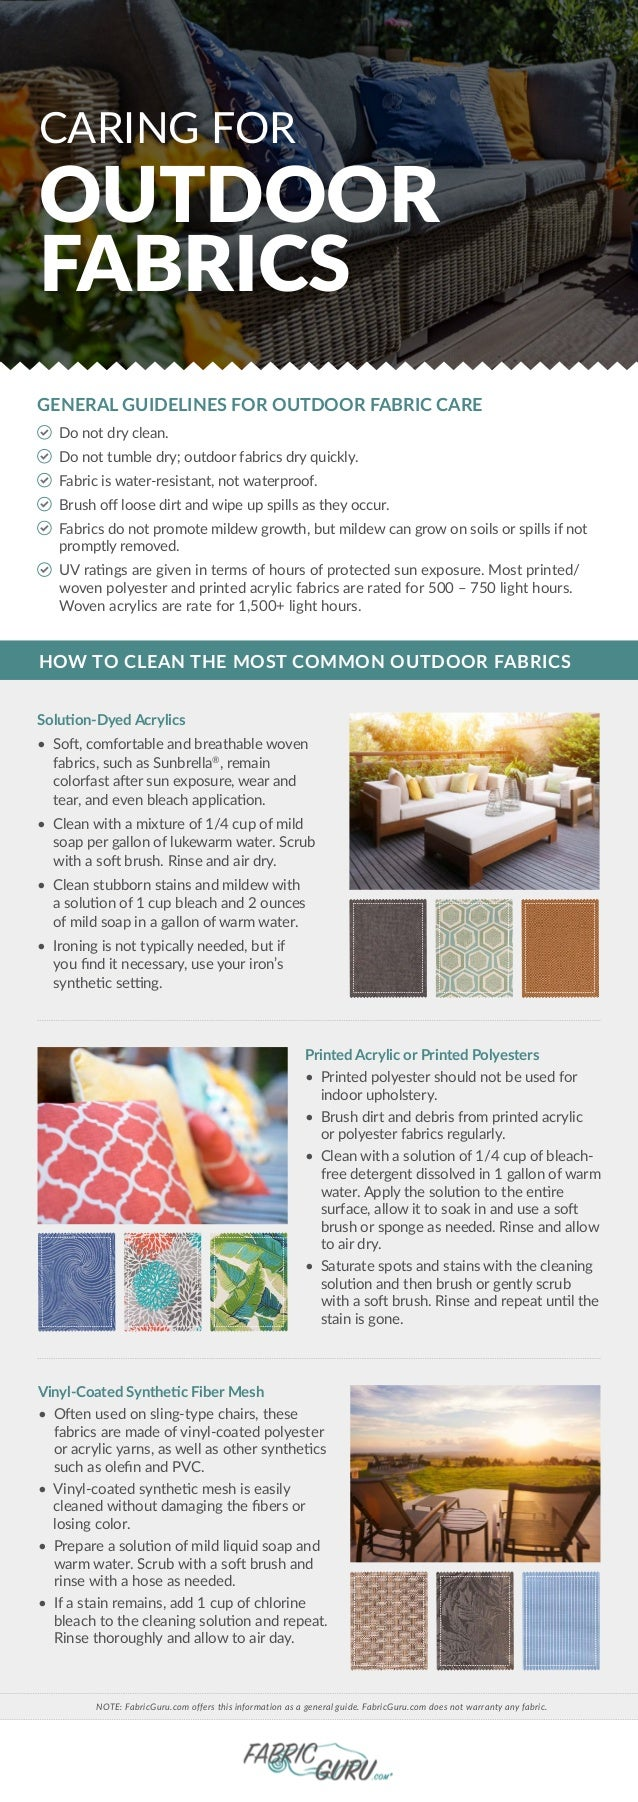 Caring For Outdoor Fabrics 1